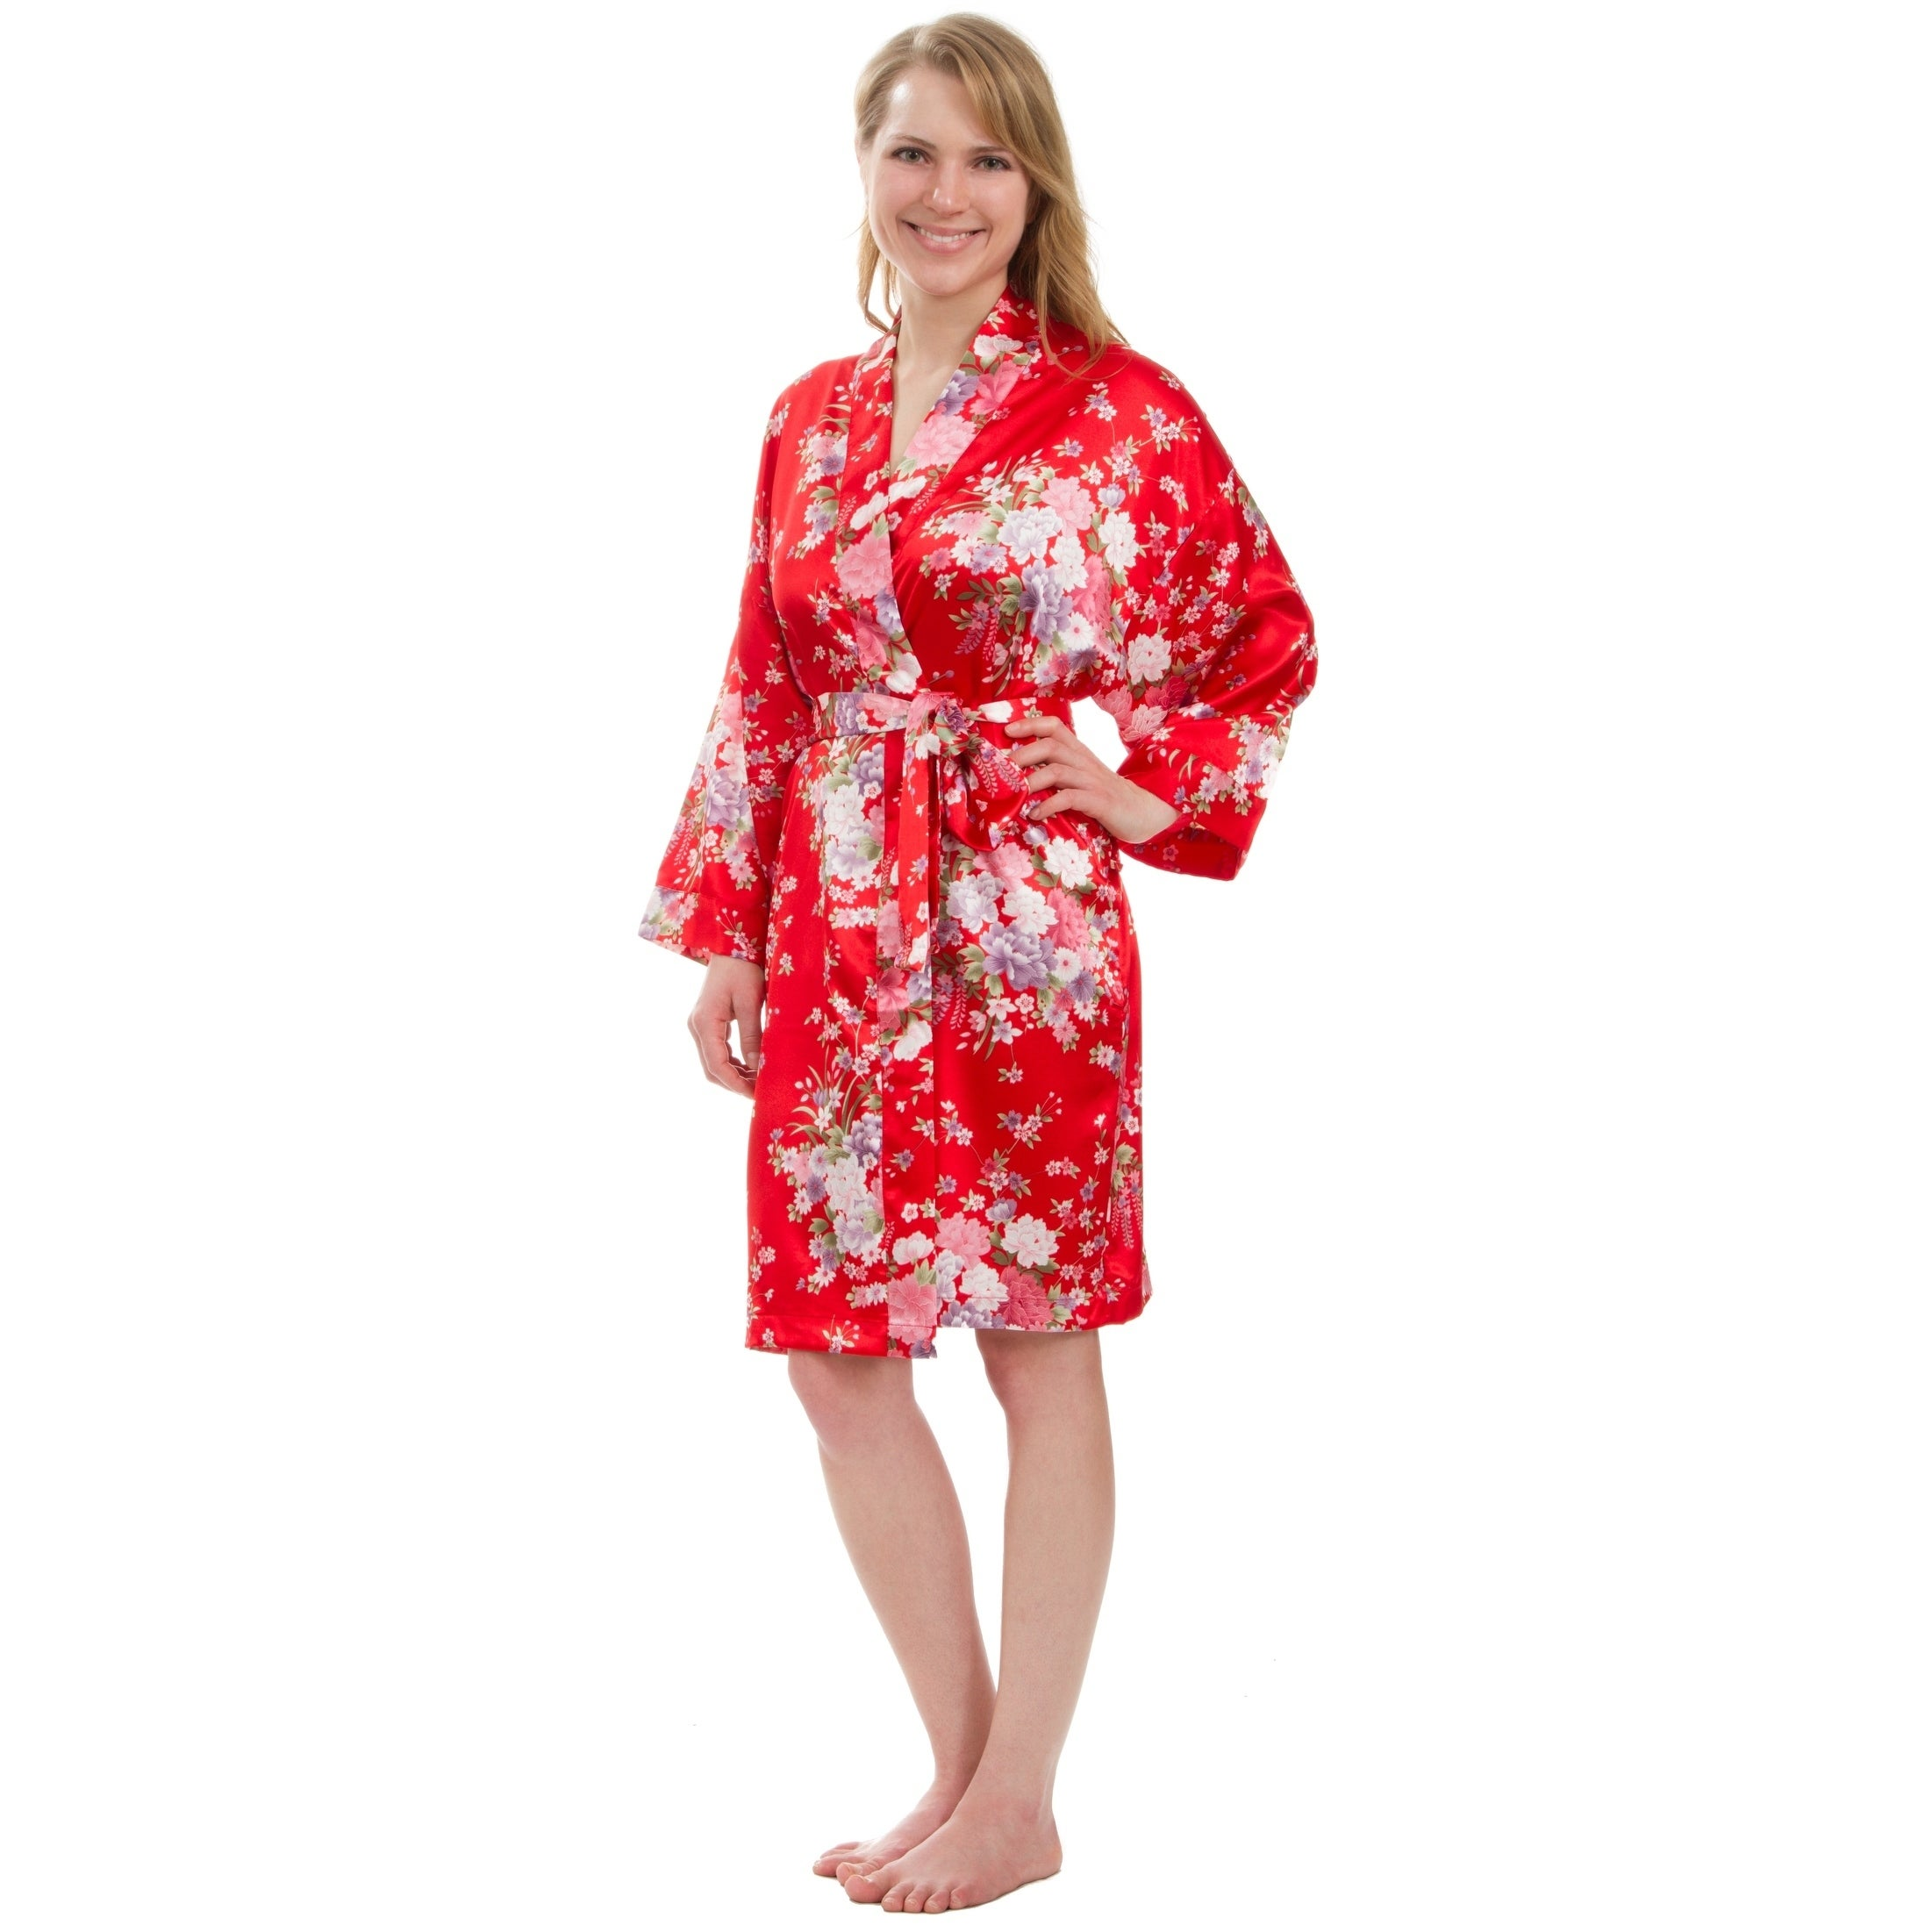 bfd71997e22 Shop Leisureland Women s Knee-Length Floral Satin Robe - Free Shipping On Orders  Over  45 - Overstock - 18262733